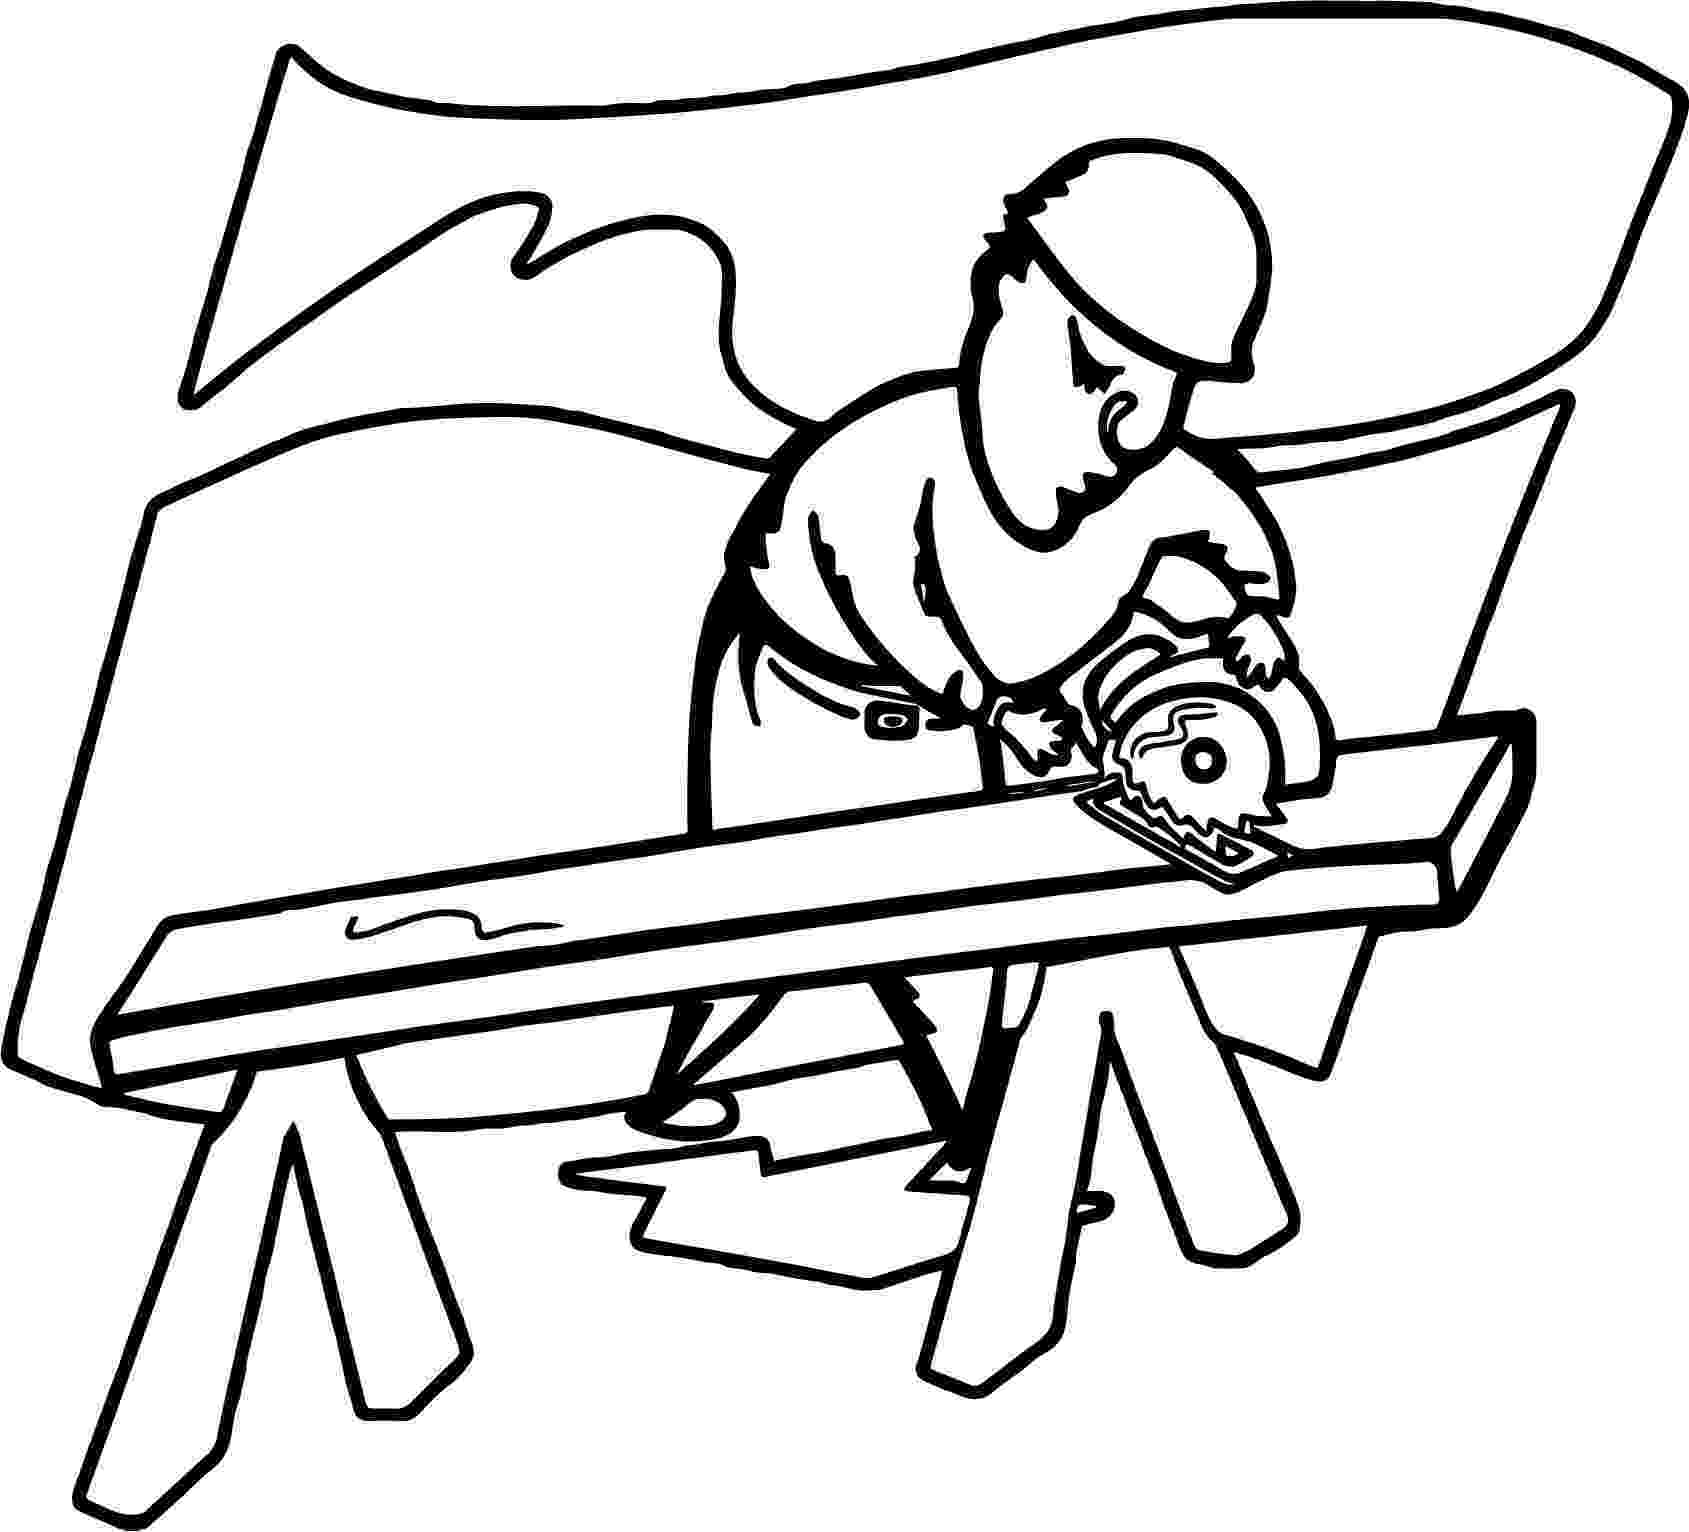 carpenter coloring pages carpenter making a table in community helpers coloring coloring pages carpenter